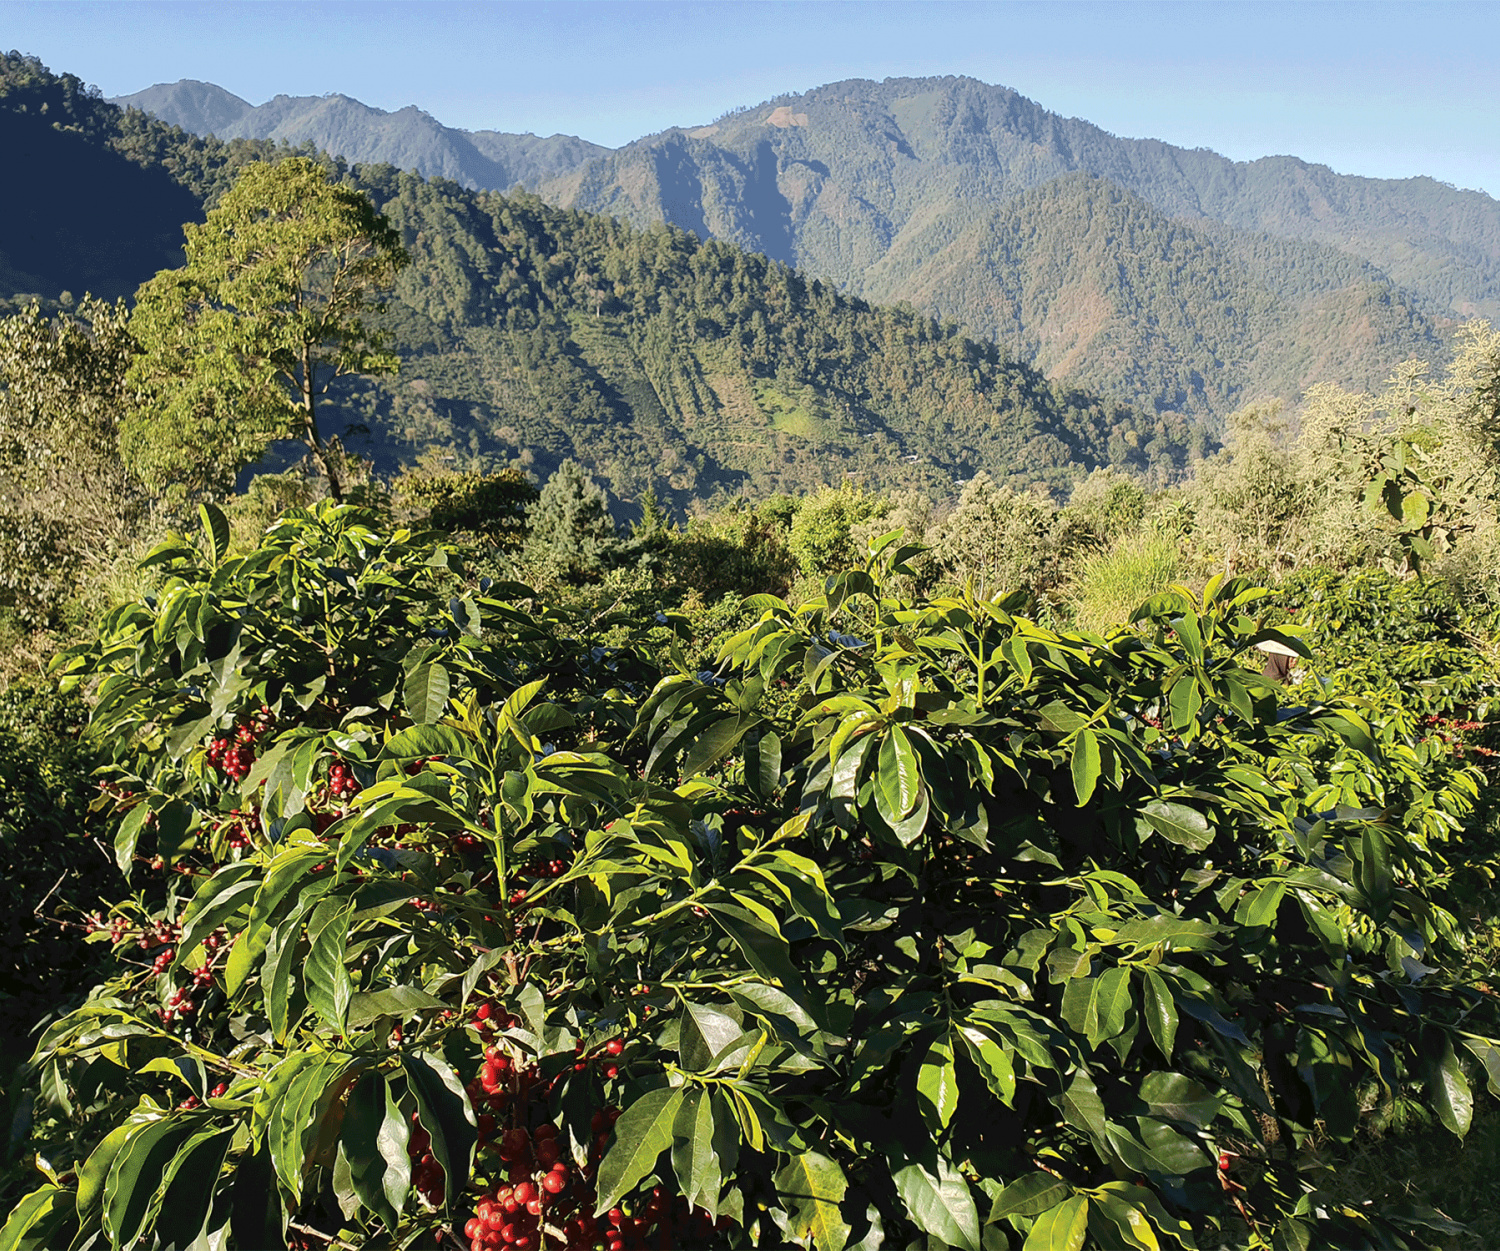 Van Houtte Signature Collection Fairtrade coffee | Coffee growing region in Mexico